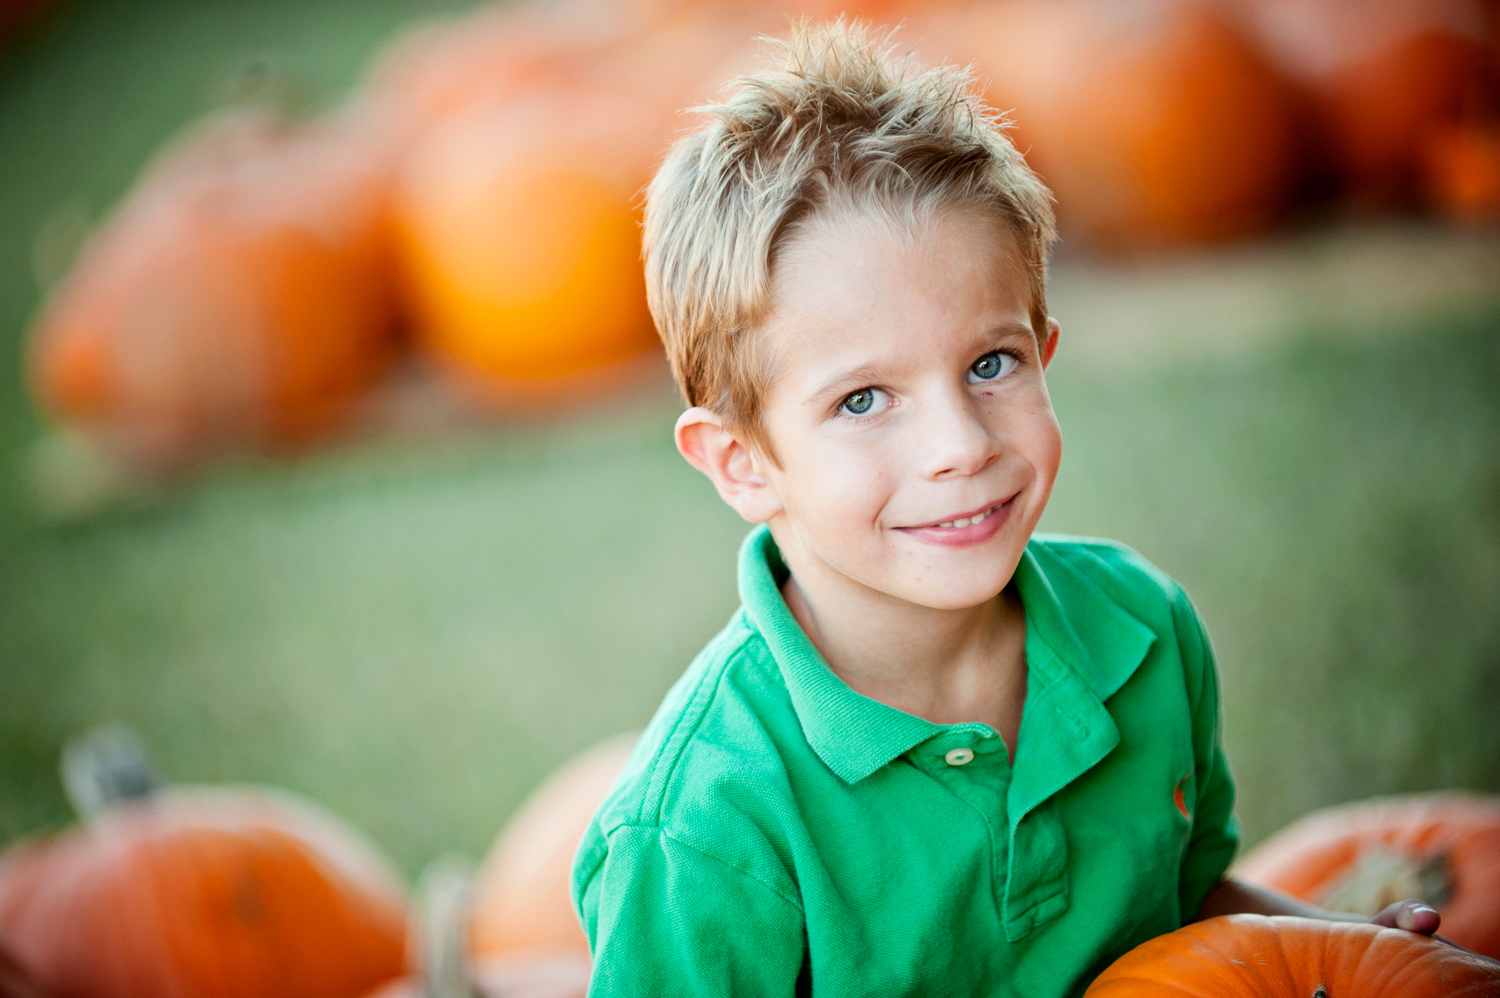 pumpkin-patch-child-boy-photographer-houston.jpg